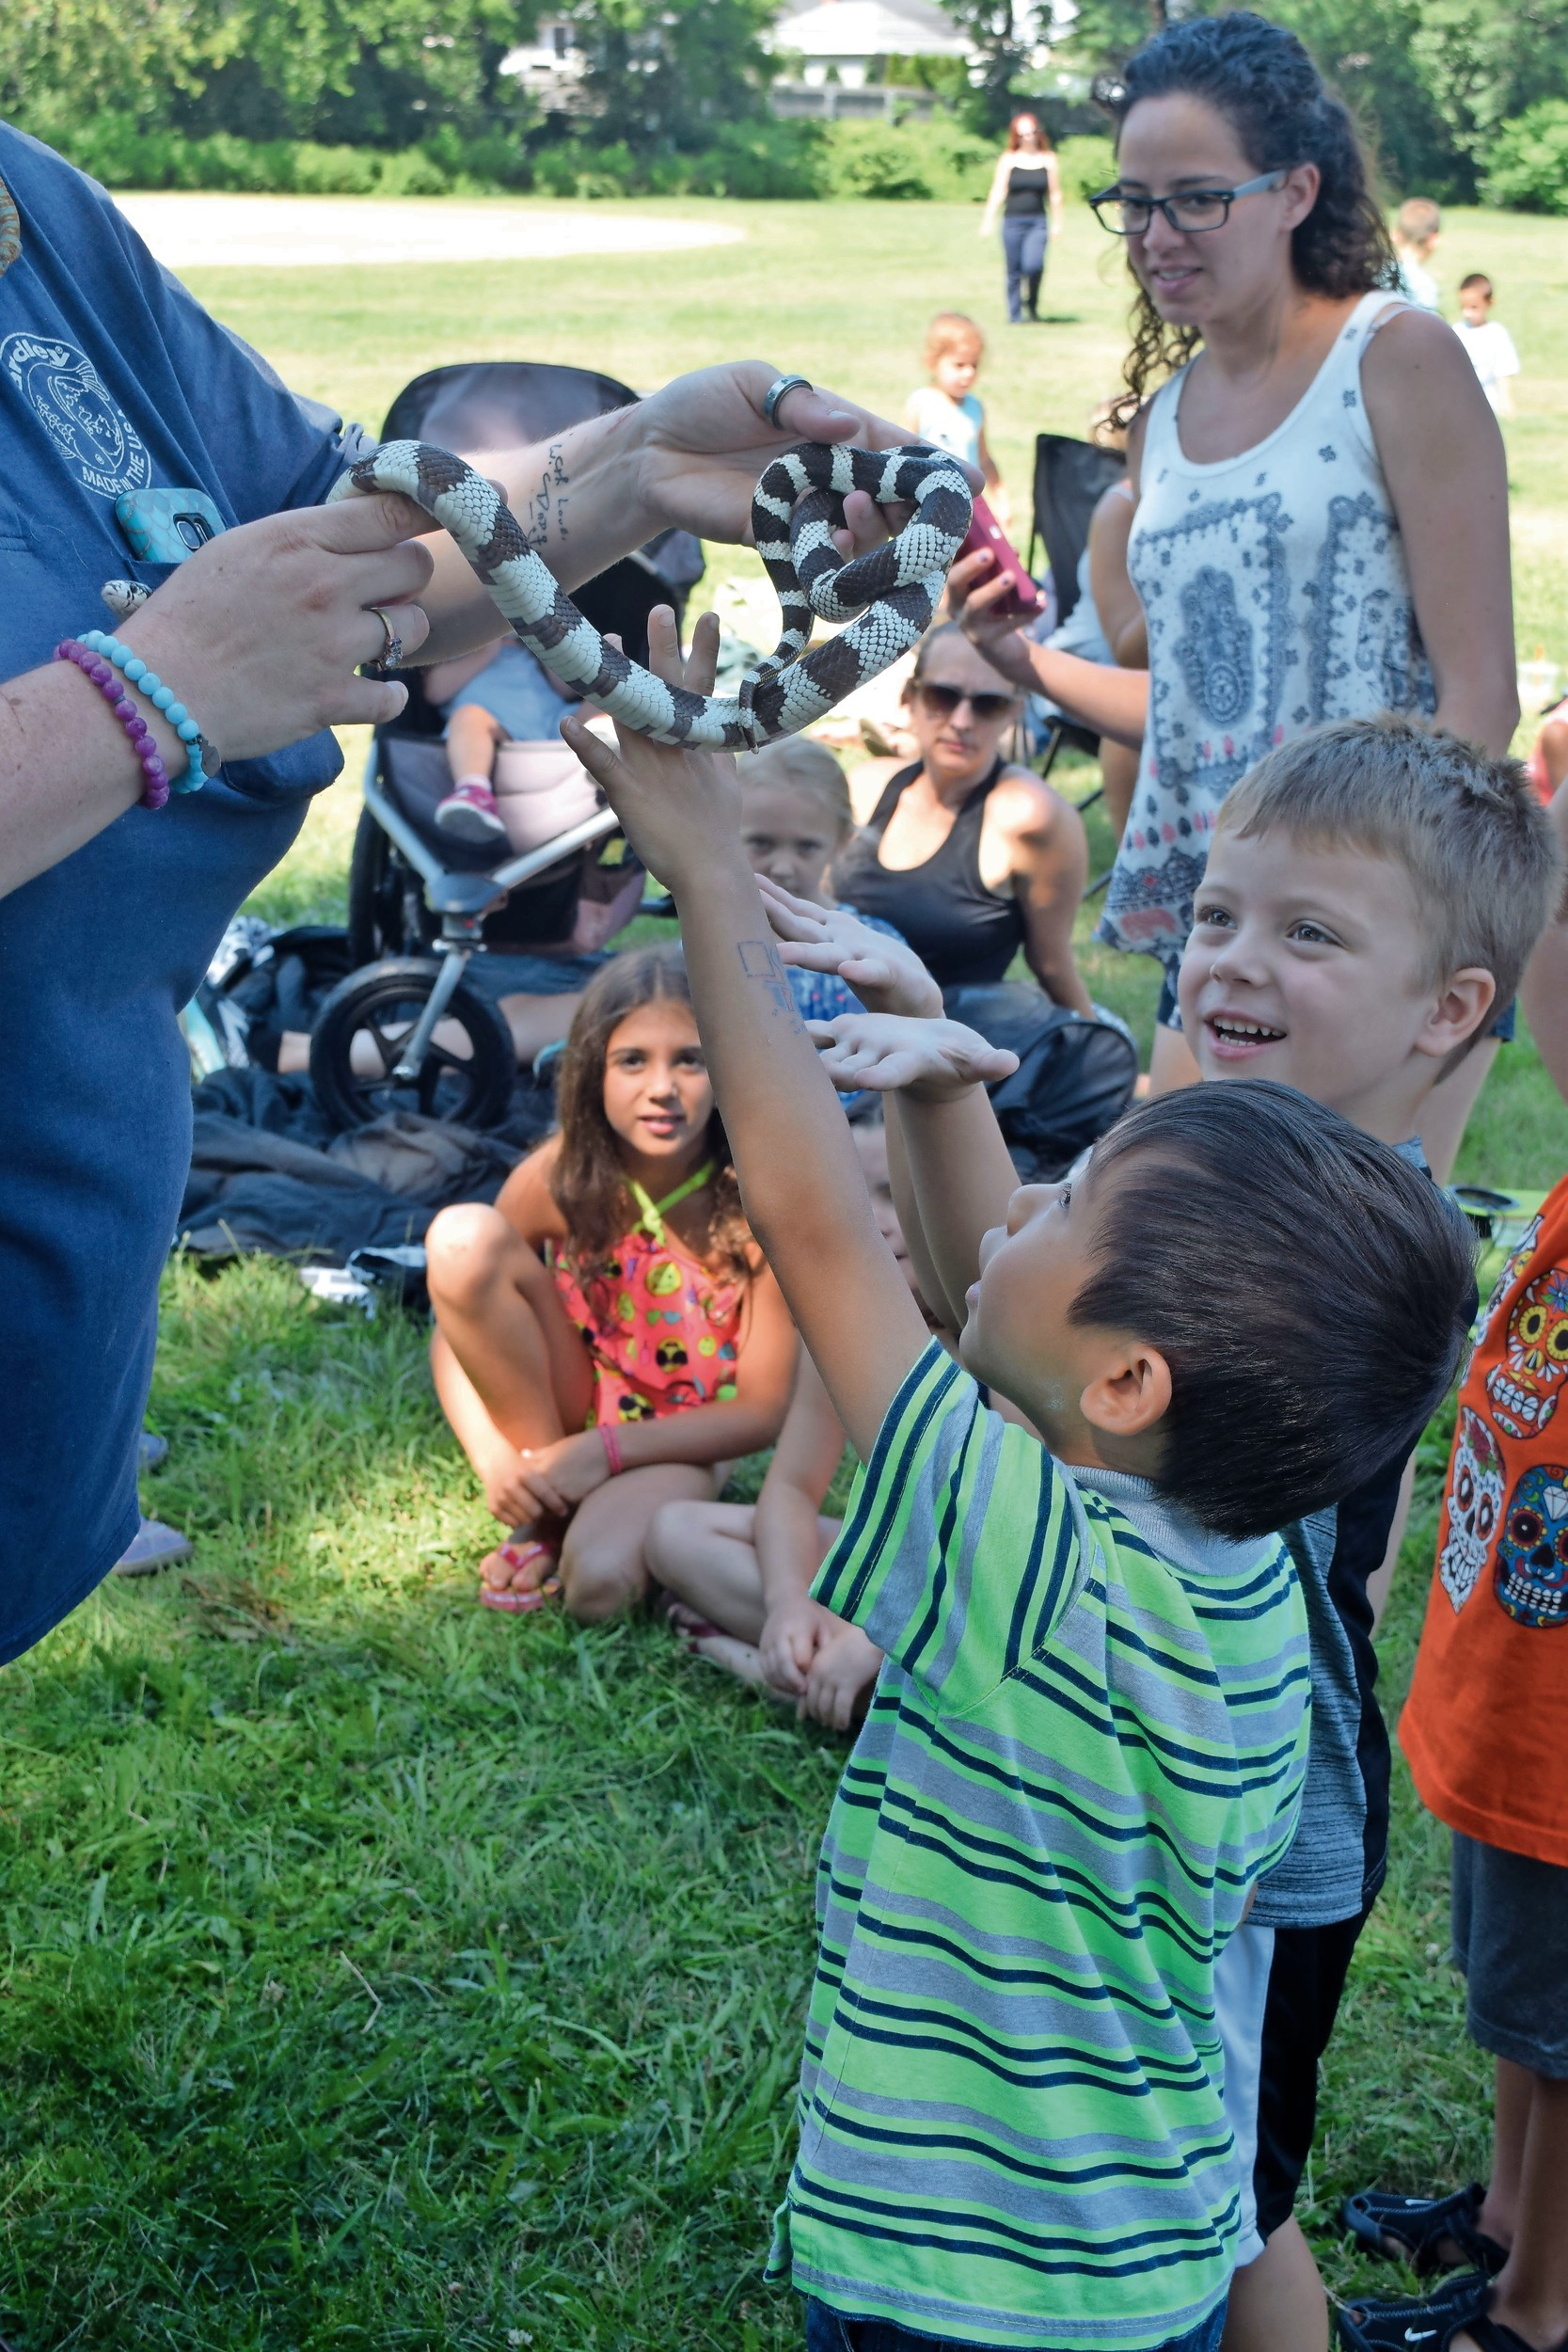 Children pet snakes and other creatures during the event.